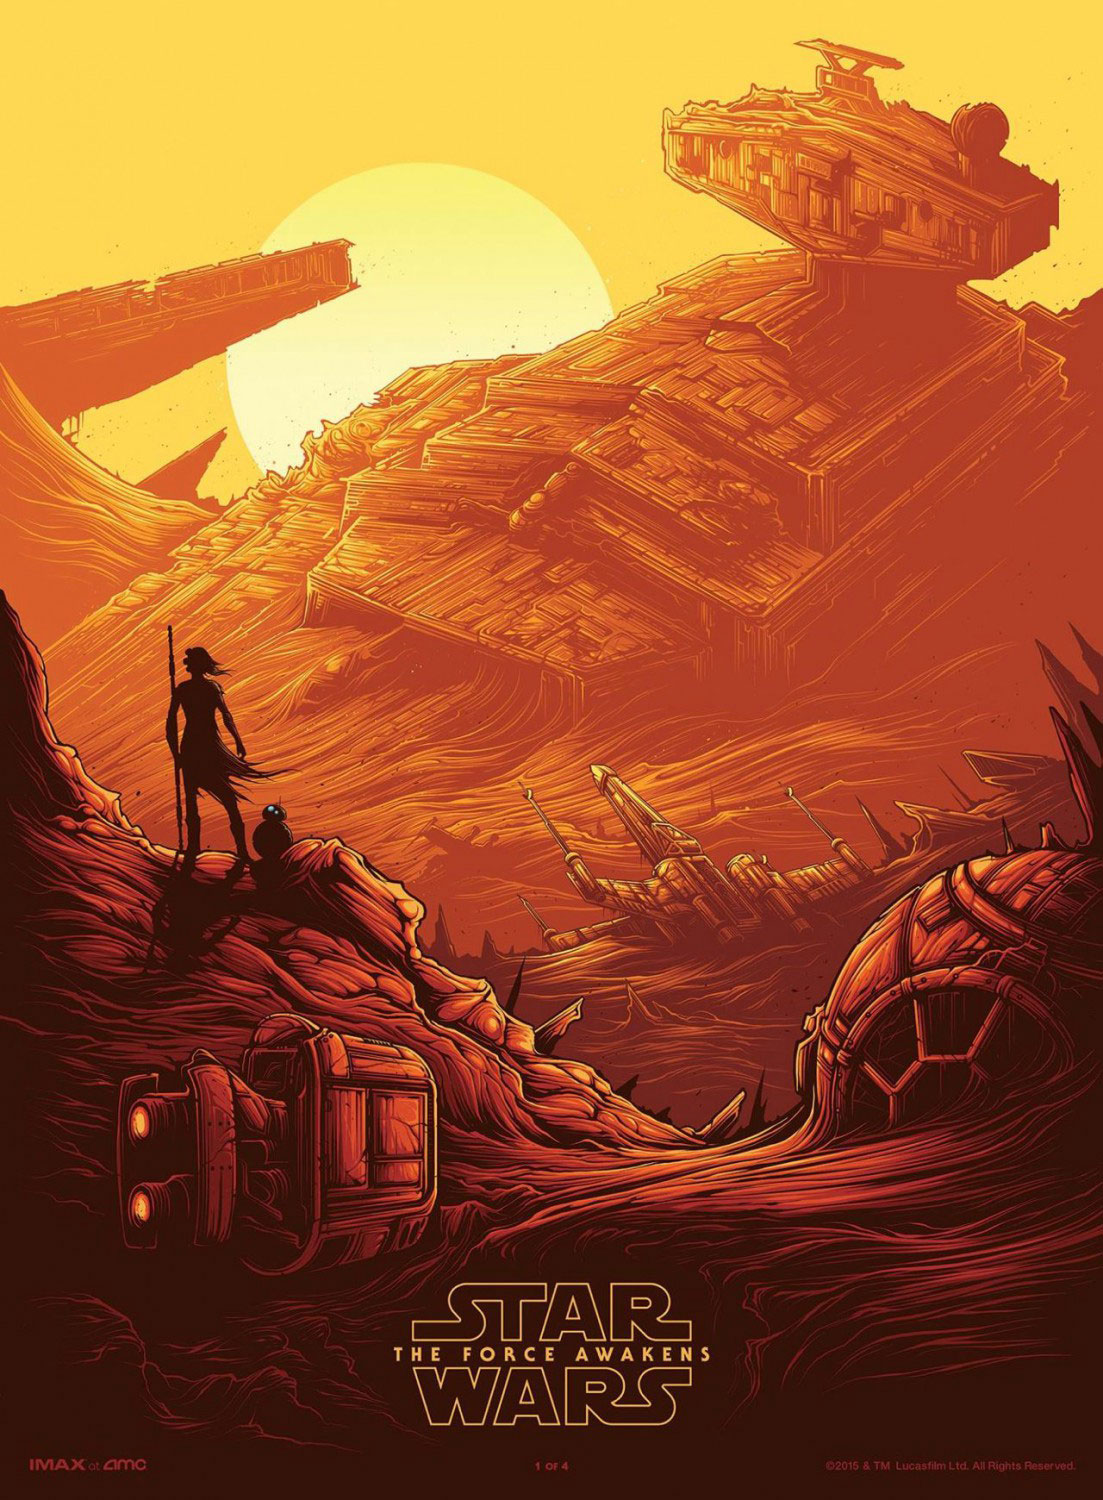 star wars the force awakens posters Dan Mumford